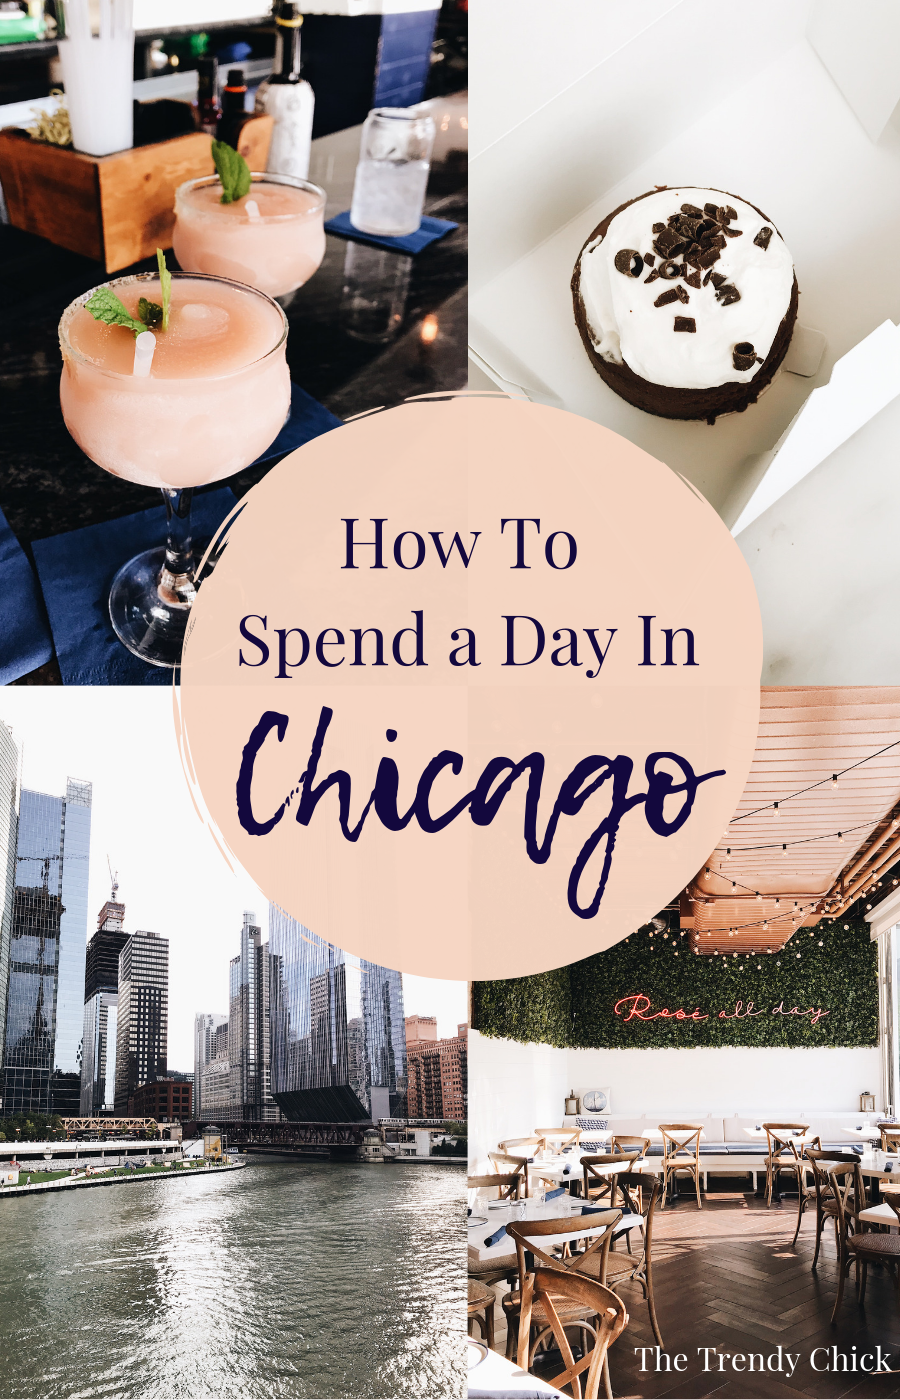 how to spend a day in Chicago